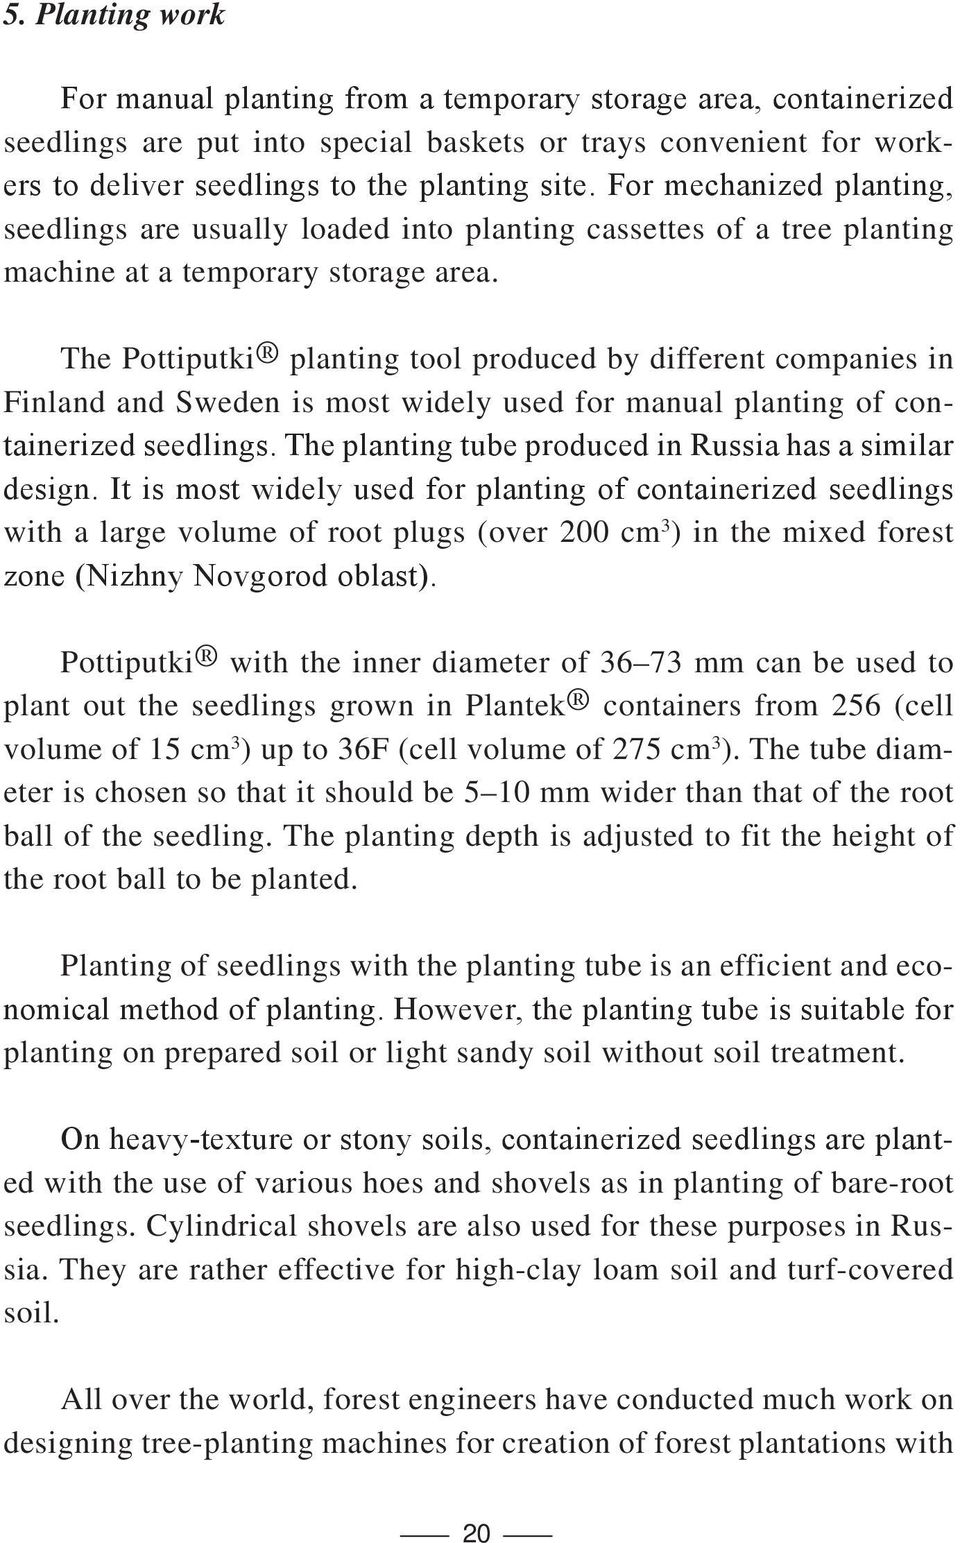 The Pottiputki planting tool produced by different companies in Finland and Sweden is most widely used for manual planting of containerized seedlings.